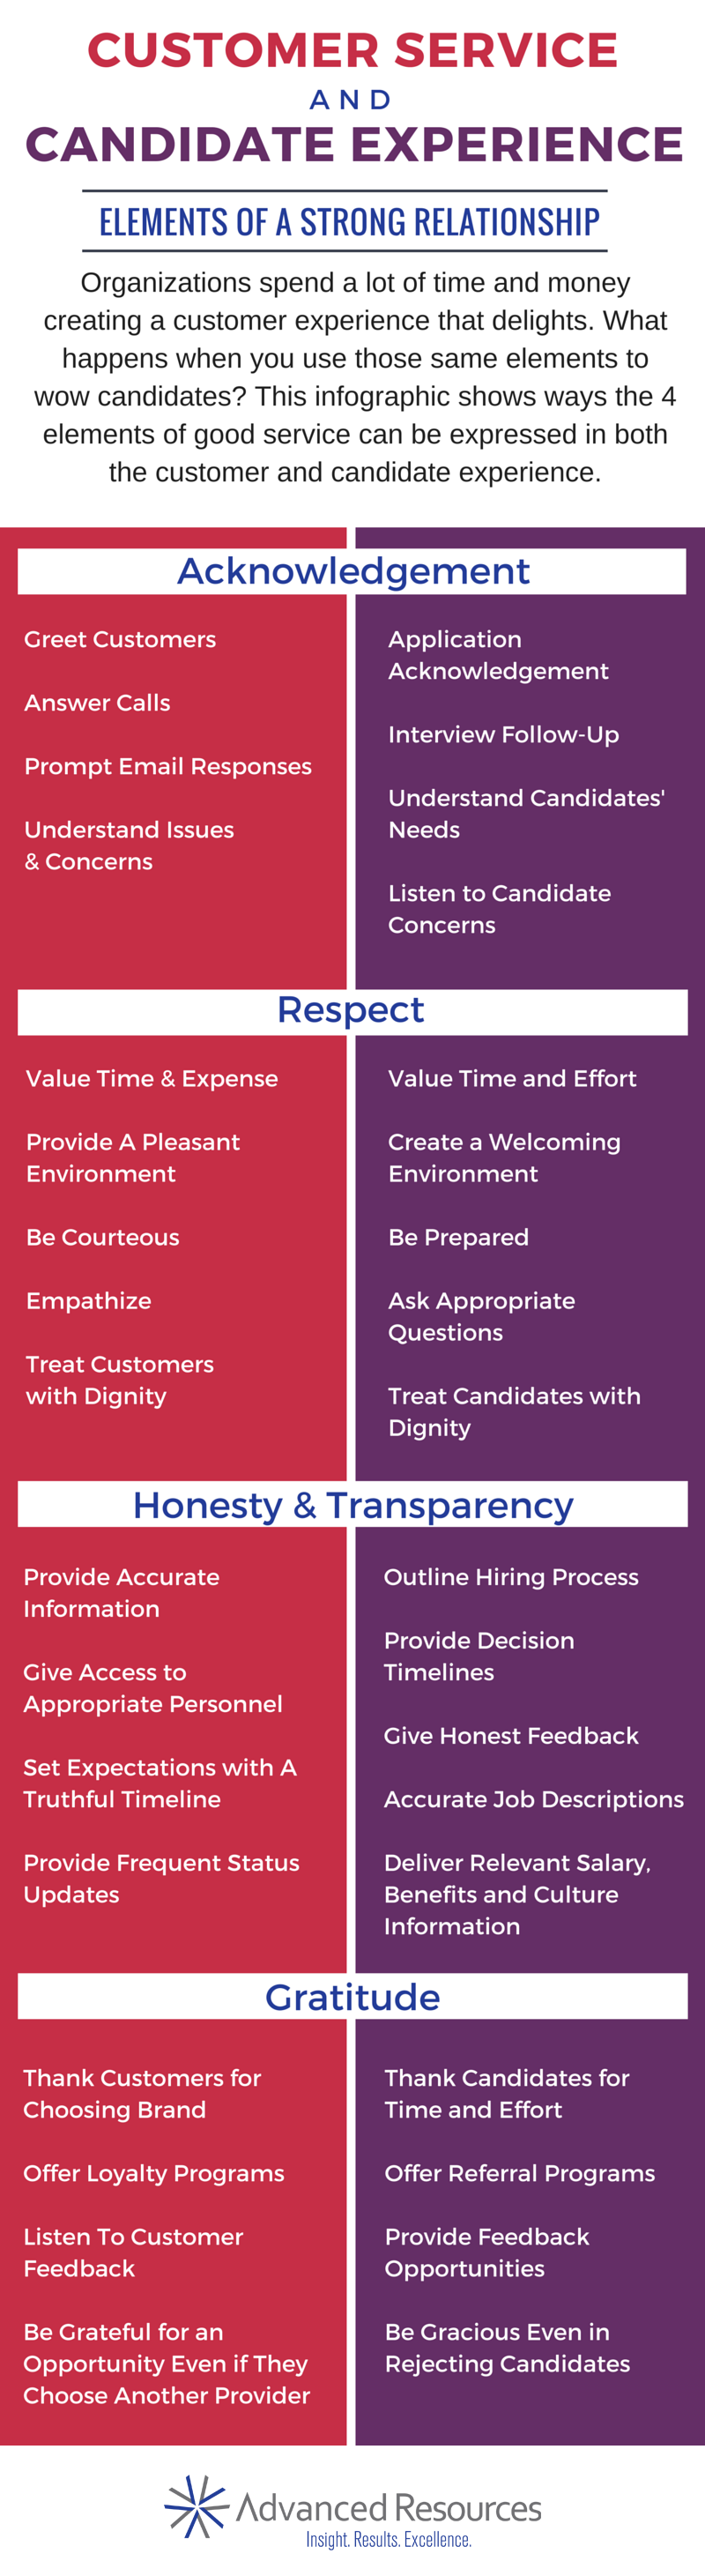 CustomerCandidateExperienceInfographic.png